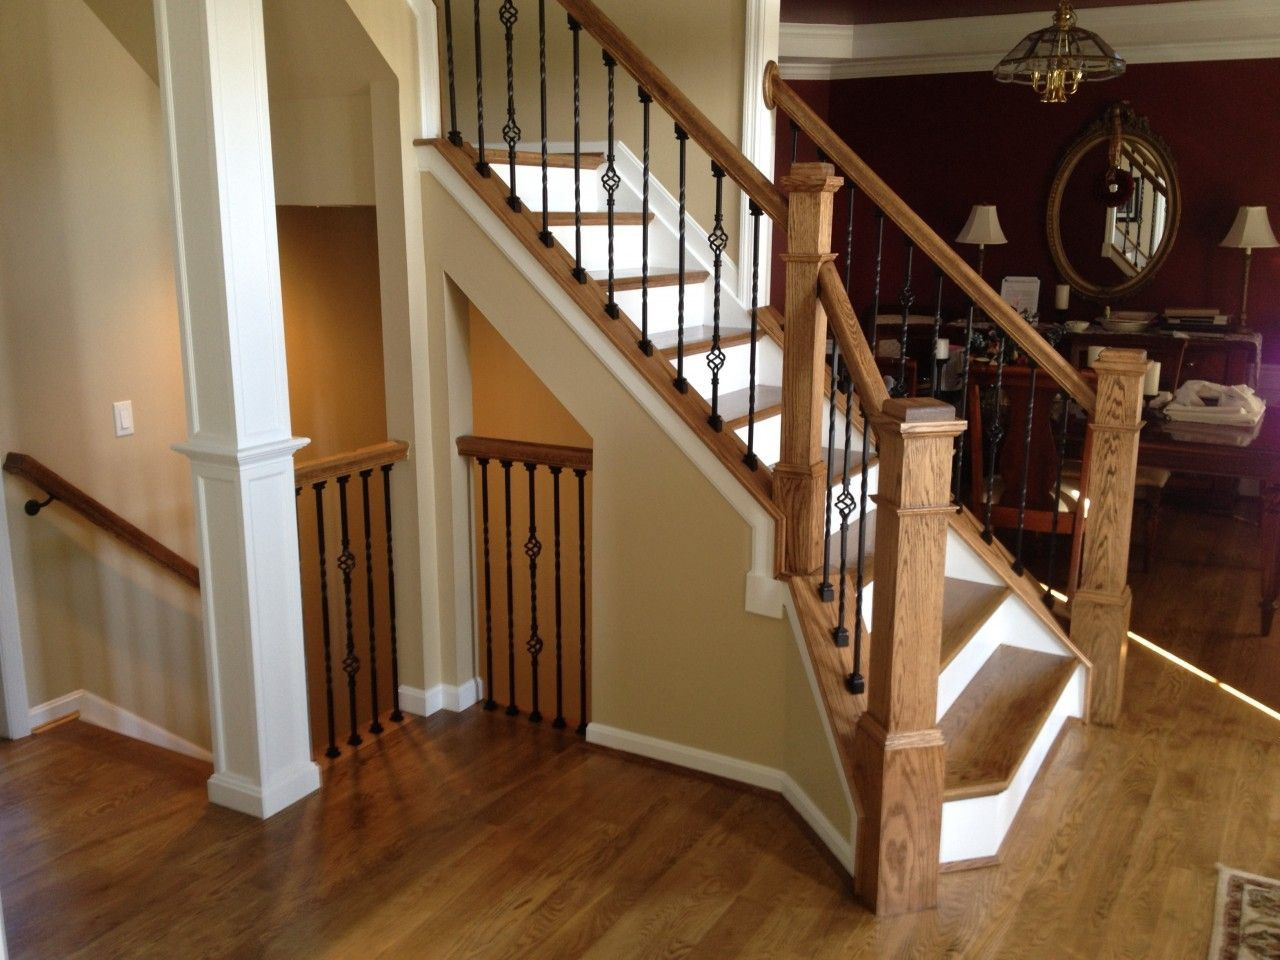 installing unfinished hardwood floors of adams hardwood flooring medford ma http glblcom com pinterest with regard to adams hardwood flooring medford ma installing hardwood flooring on the floors of your home is one of the most effective in